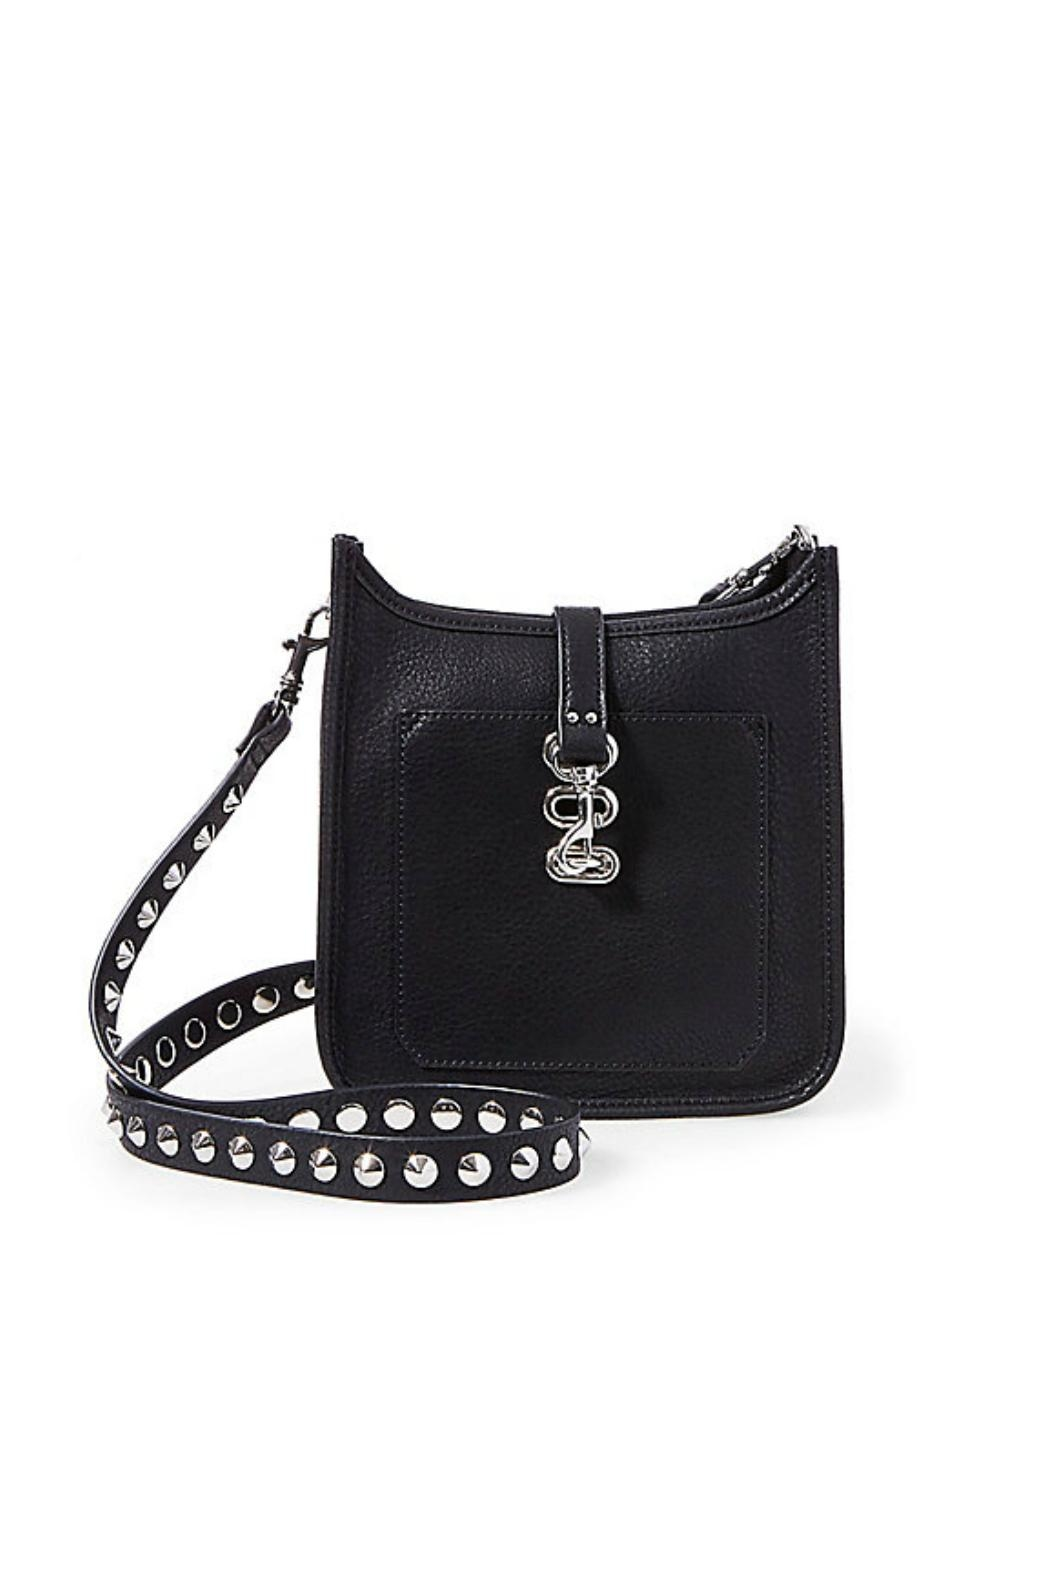 e9f2de2bb099 Steve Madden Bwylie Crossbody from New York by Let s Bag It — Shoptiques